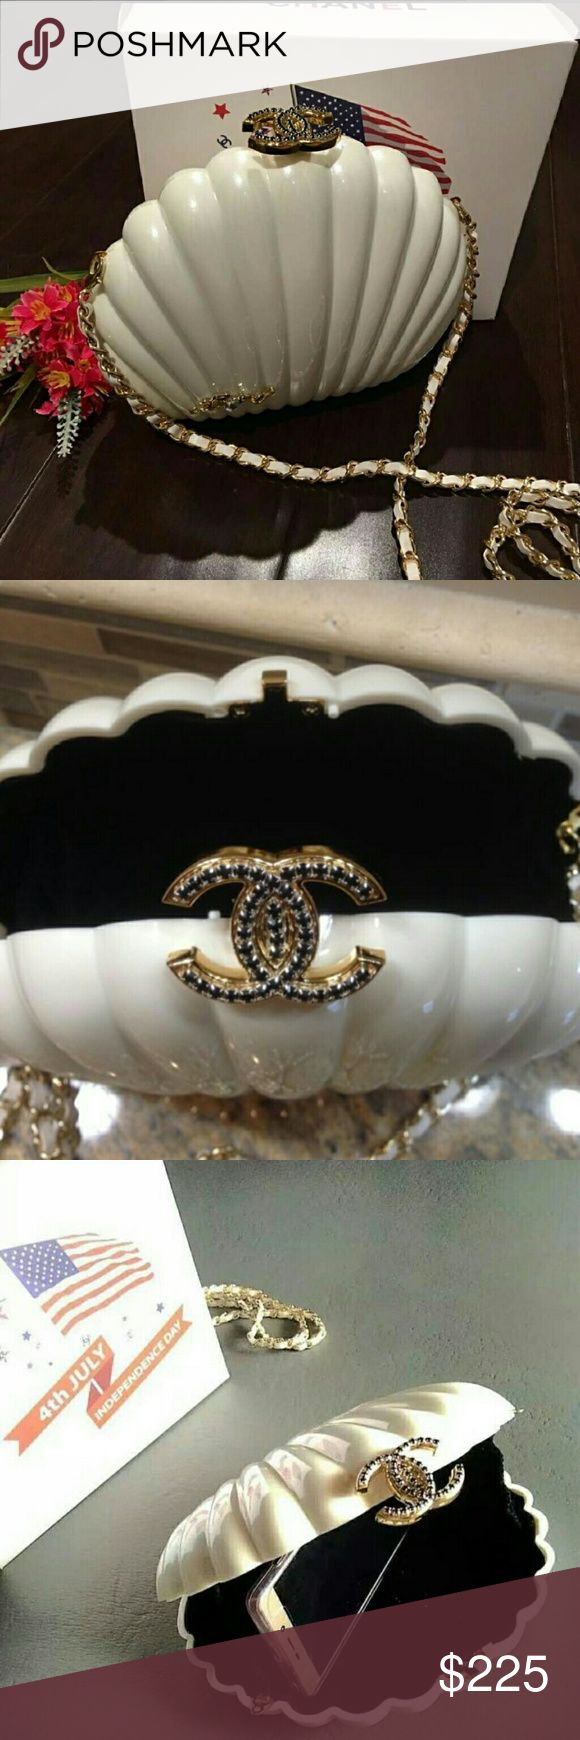 """Chanel VIP Clam Shell 4th of July PRICE FIRM  ChanelVIPLIMITED COLLECTION RARE INDEPENDENCE DAY VIP GIFTWhiteClam ShellCrystal Minaudiere Evening Bag  Black velvet interior with elastic sides Original box. Dimensions 7.5"""" width x 6.5"""" height x 2.5"""" depth 21"""" strap drop  ****************Brand New & 100% Authentic********************  *Not available for sale in boutiques. This is a VIP gift item from Chanel Beaty and does NOT include with hologram sticker, serial number or dust bag…"""